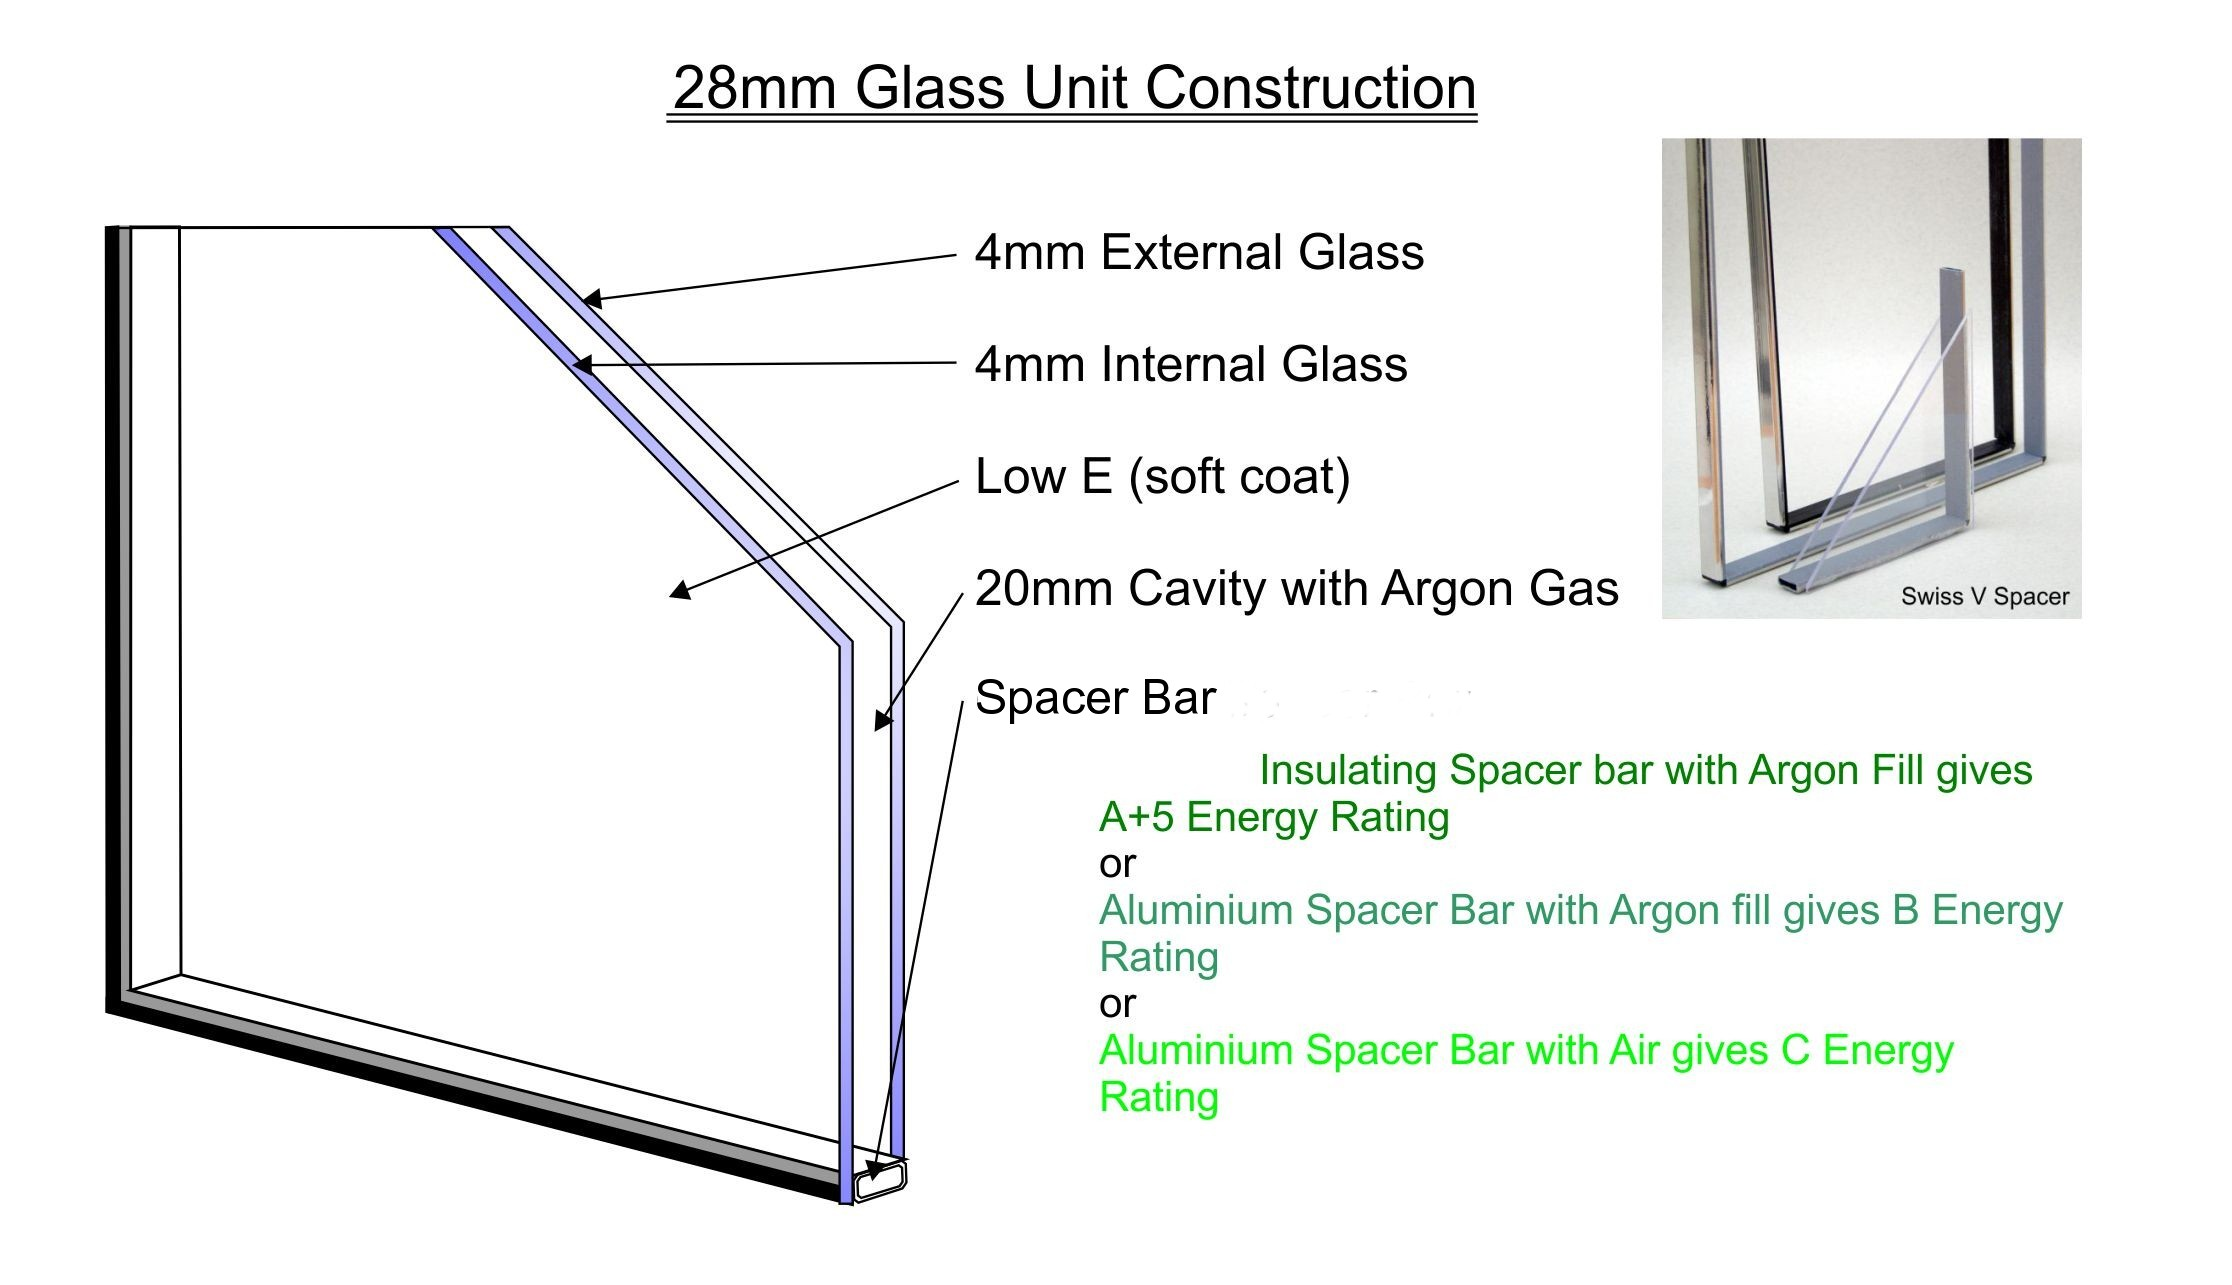 glass unit diagram